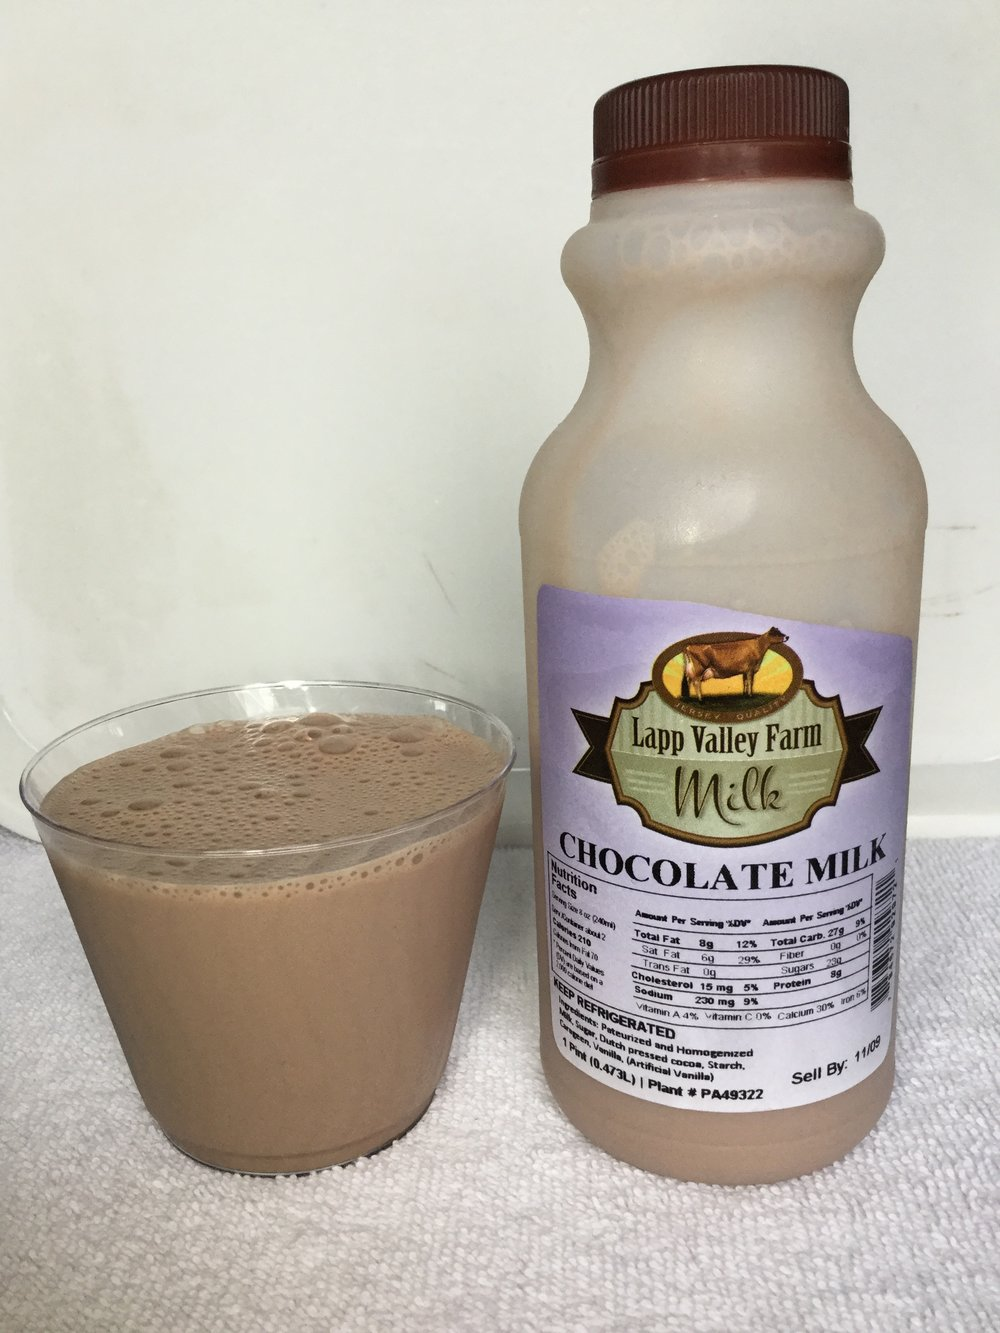 Lapp Valley Farm Chocolate Milk Cup